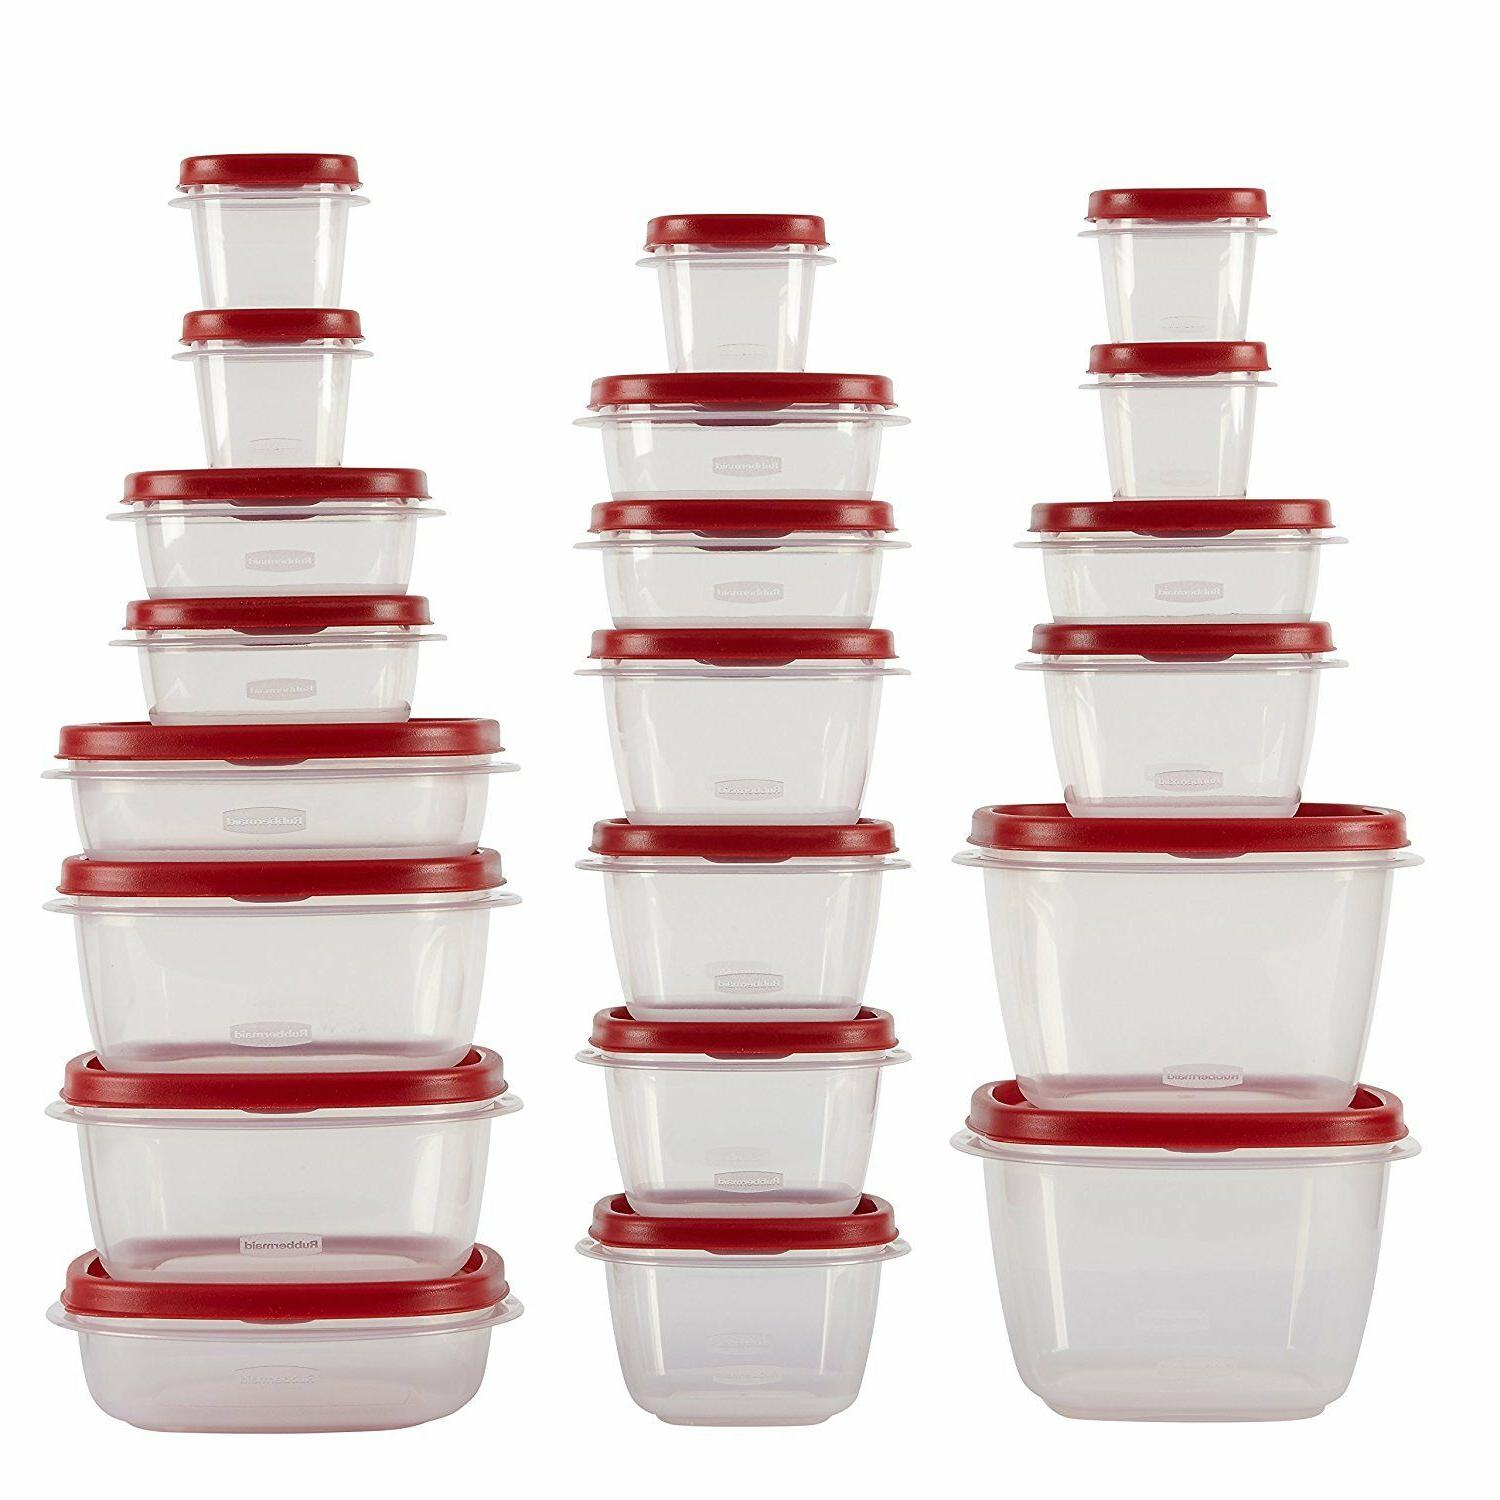 NEW EASY FIND LIDS FOOD STORAGE CONTAINER 42 PIECE 1880801